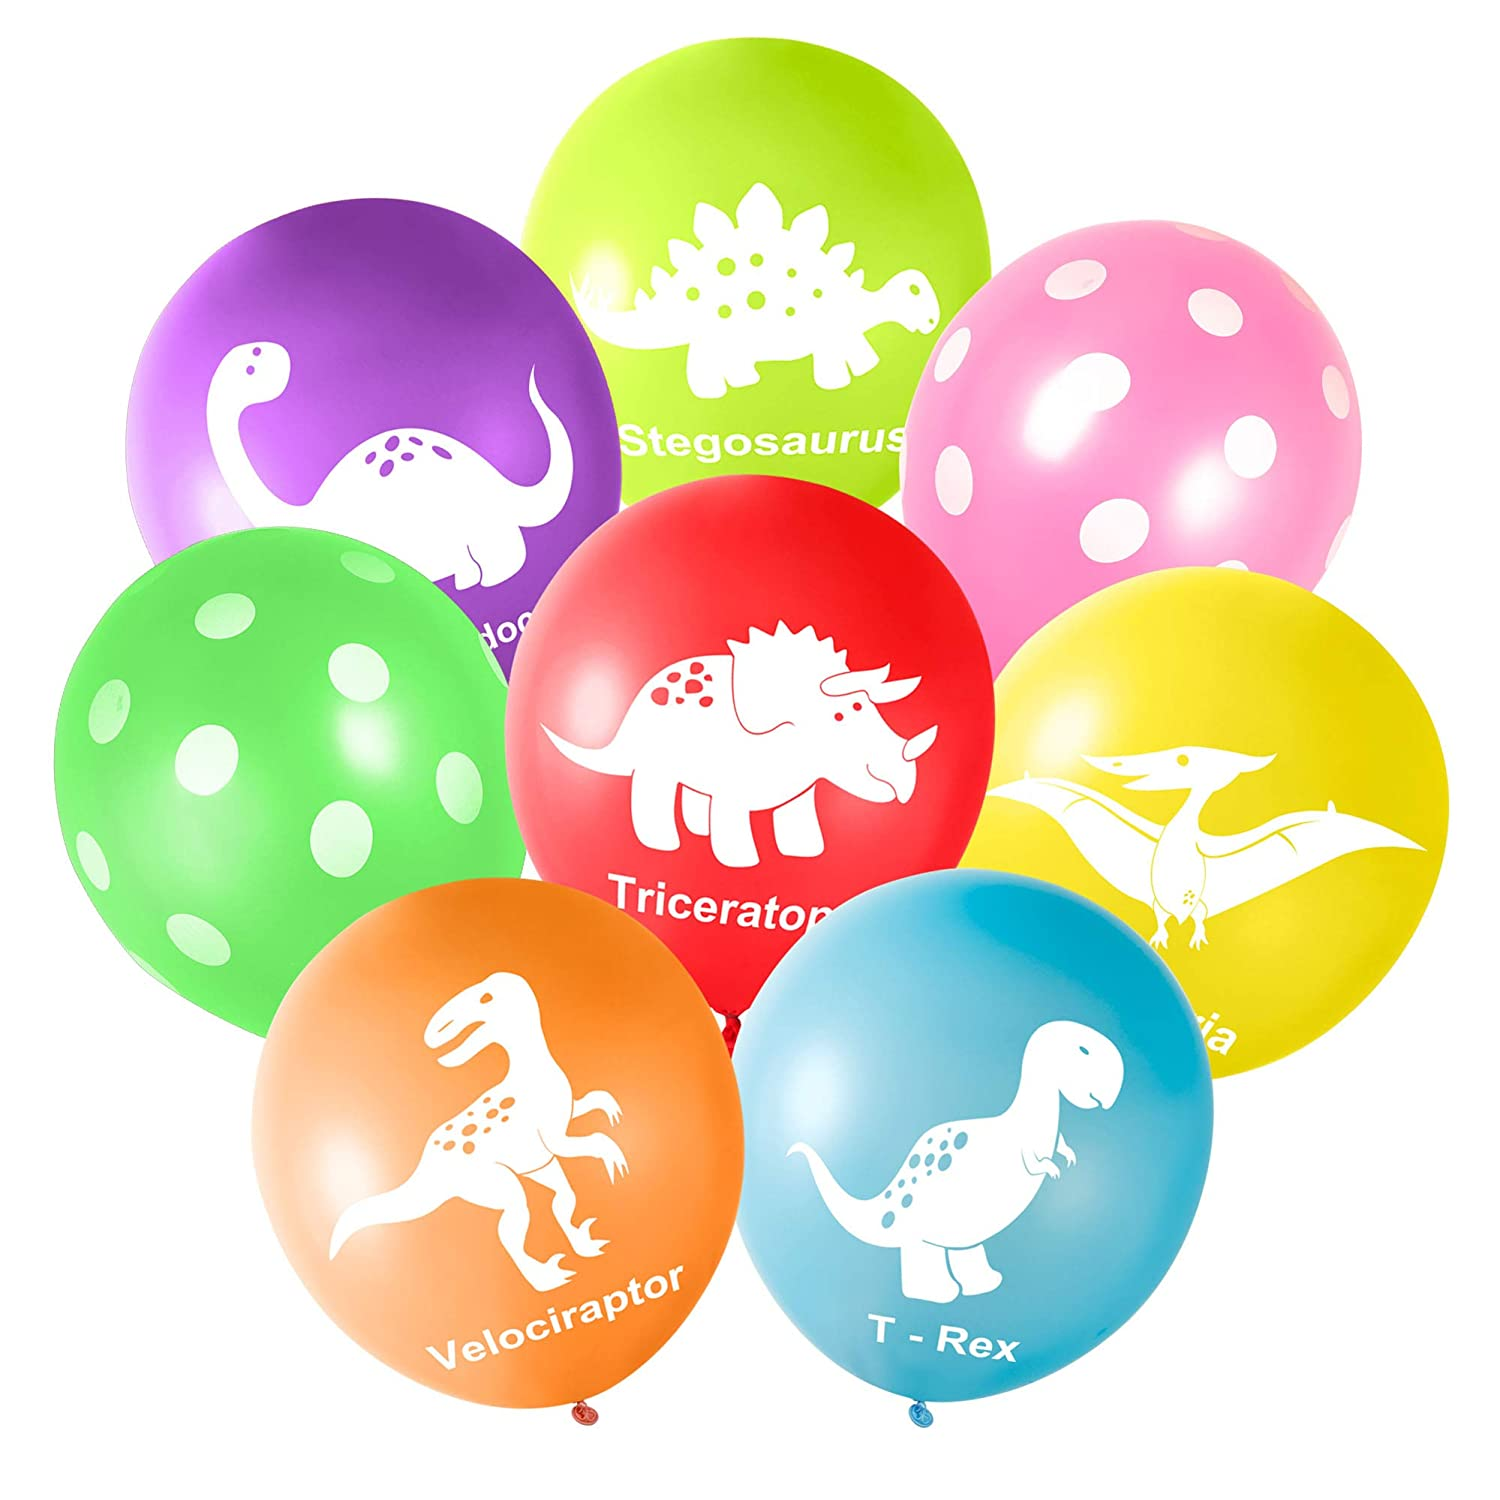 FEPITO 16PCS 12 Dinosaurs Latex Balloons for Dinosaur Party Supplies and Dinosaur Party Decorations